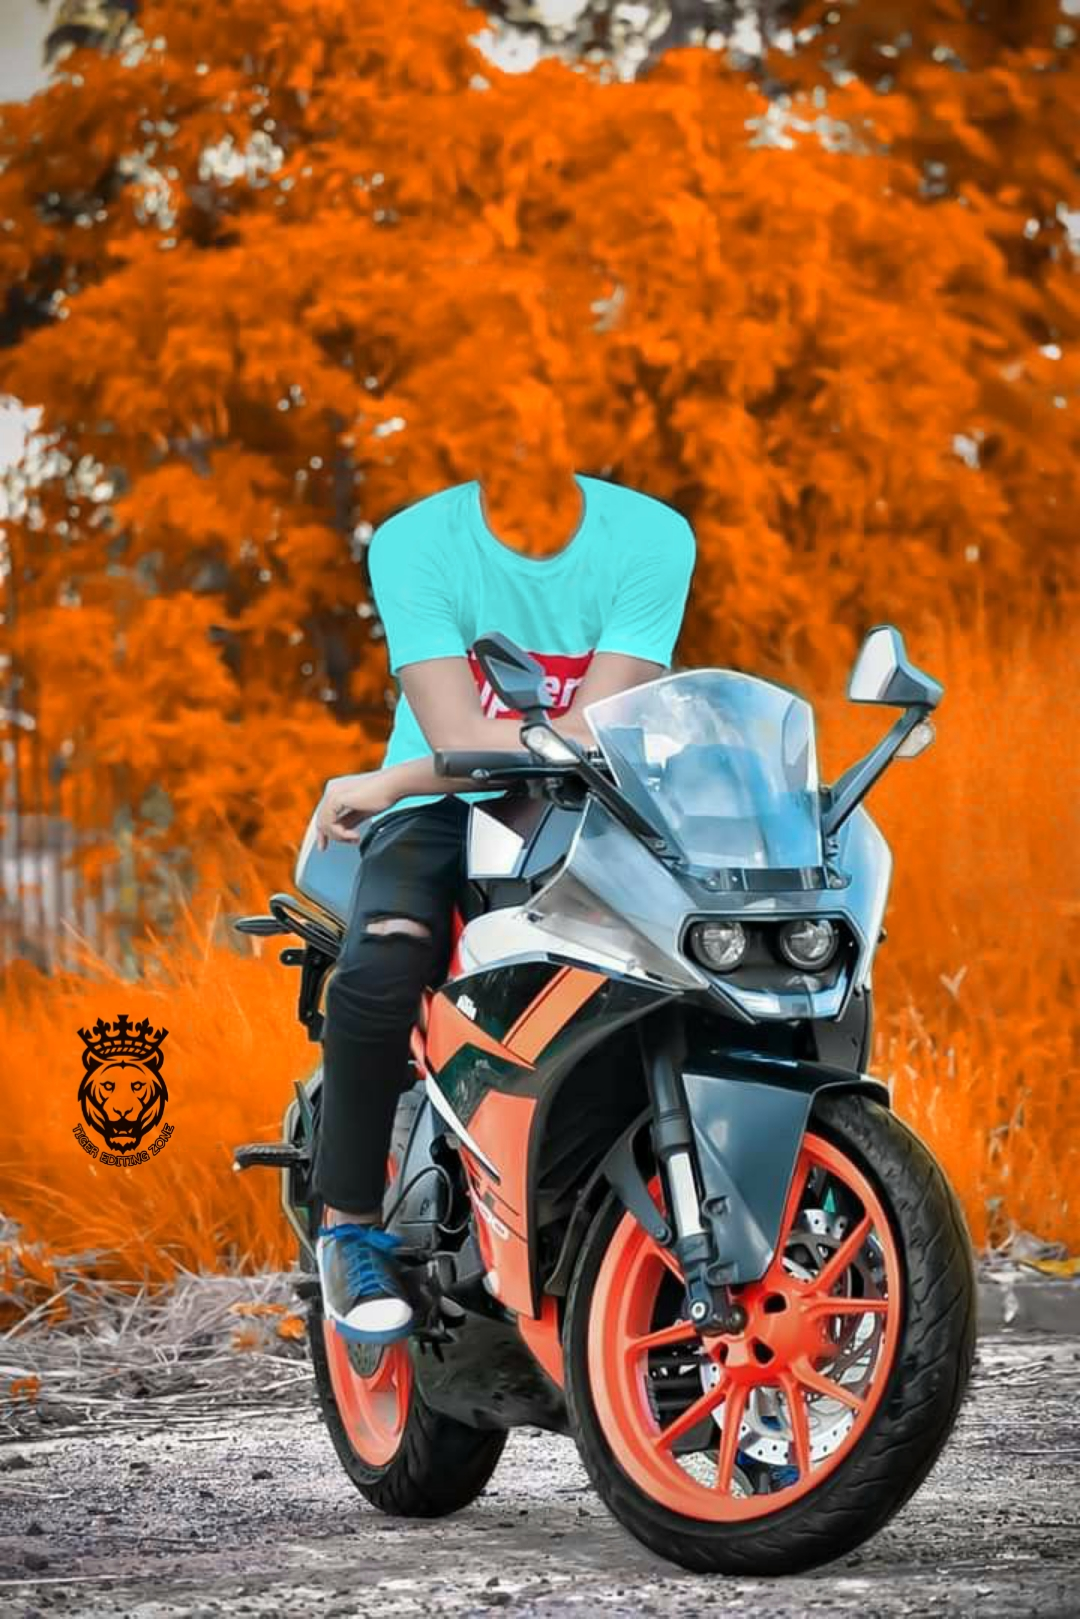 200+ KTM Bike Photo Editing Background Images Hd | 2021 | New Cb Backgrounds for Boys Hd